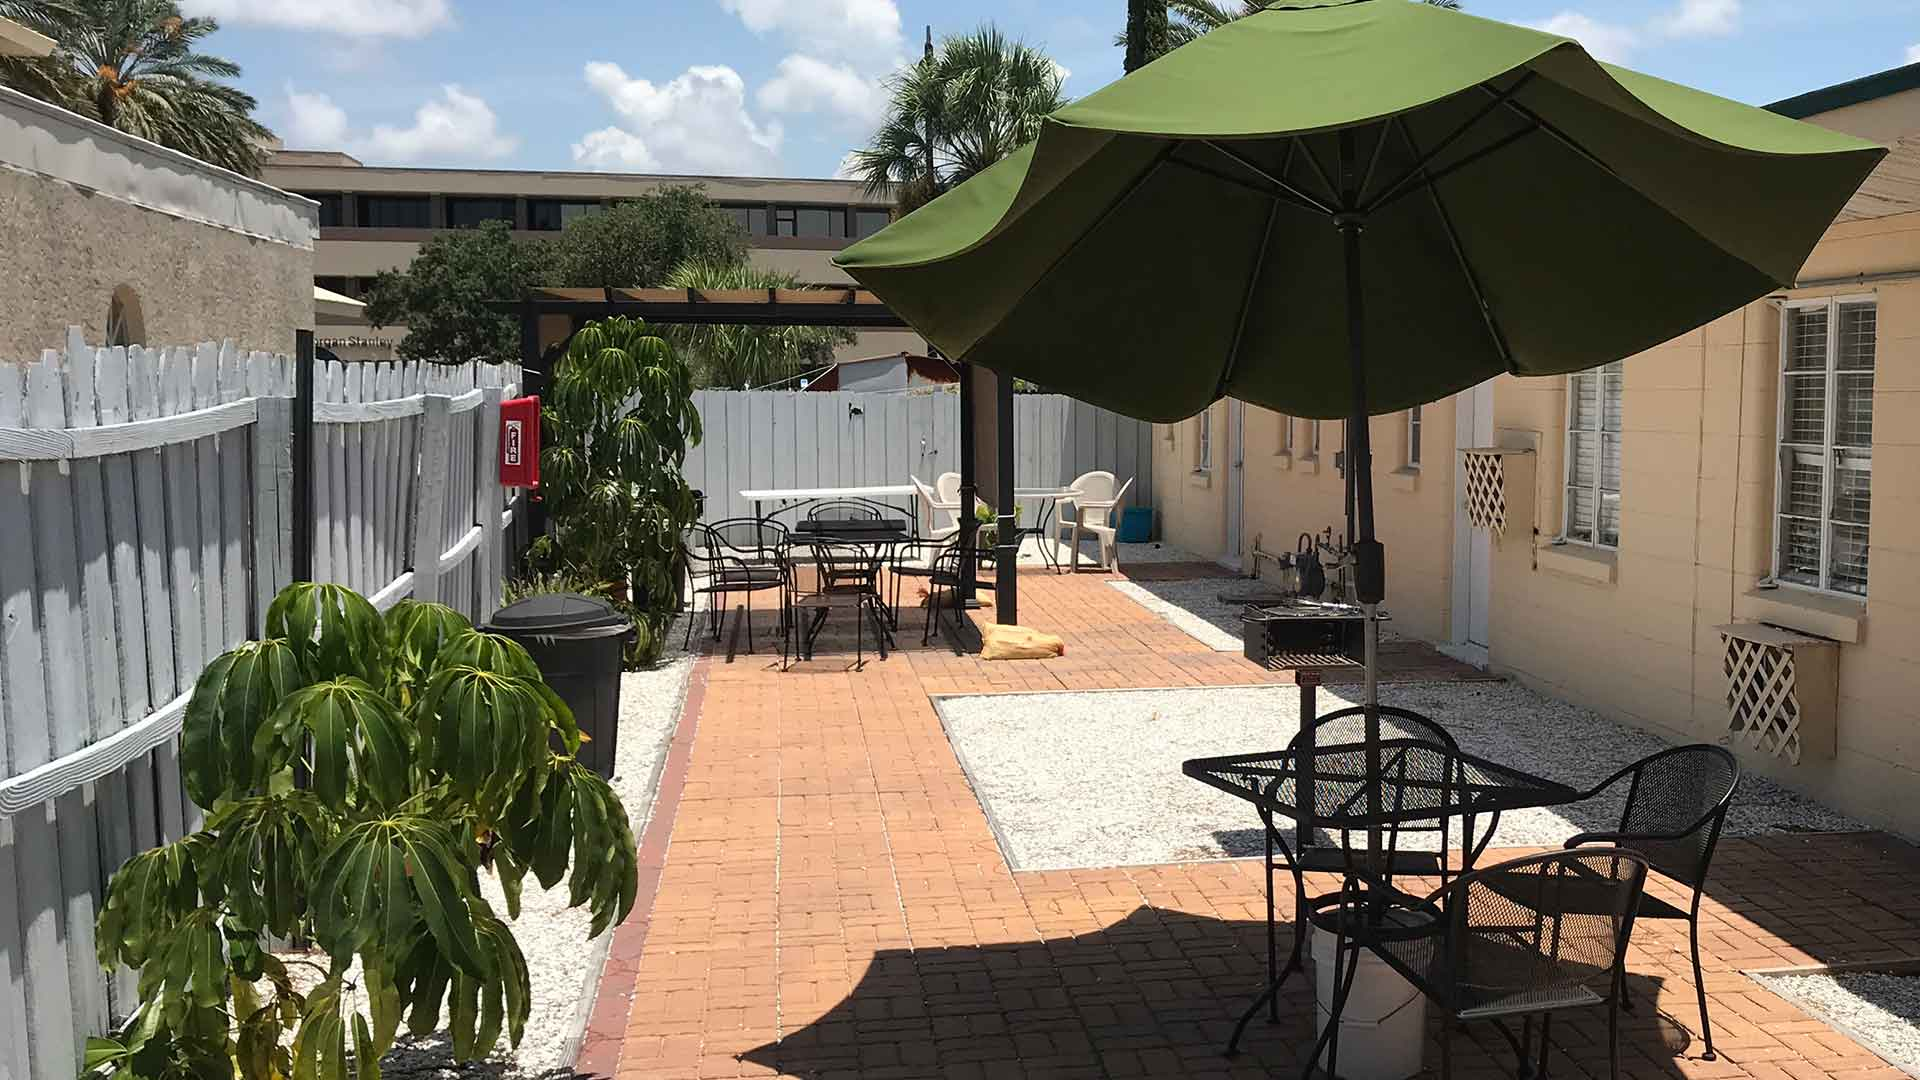 Island Breeze Inn Courtyard